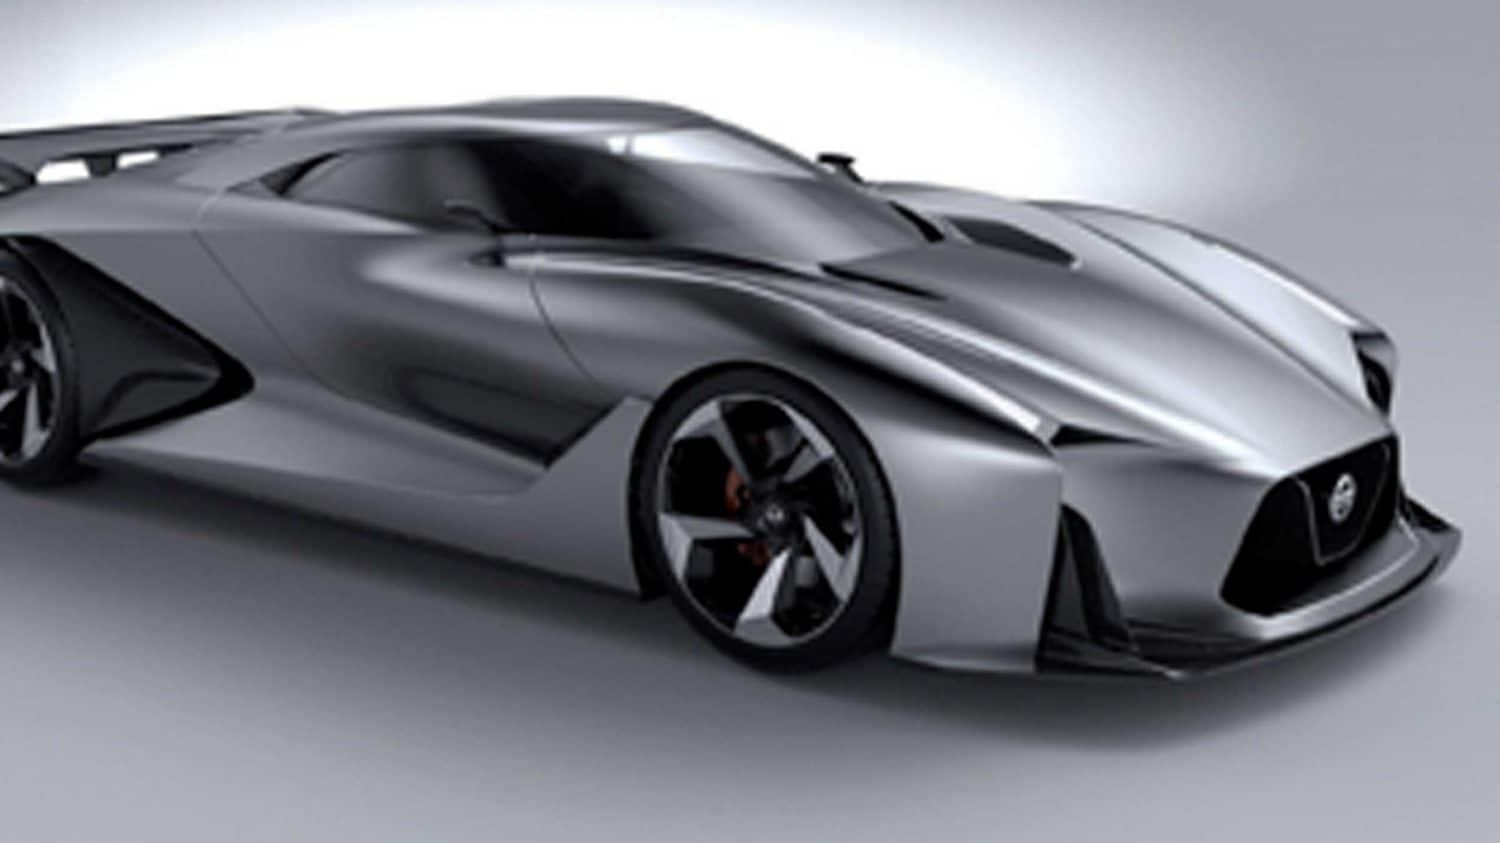 66 Best Review Nissan Gtr 2020 Top Speed Review for Nissan Gtr 2020 Top Speed